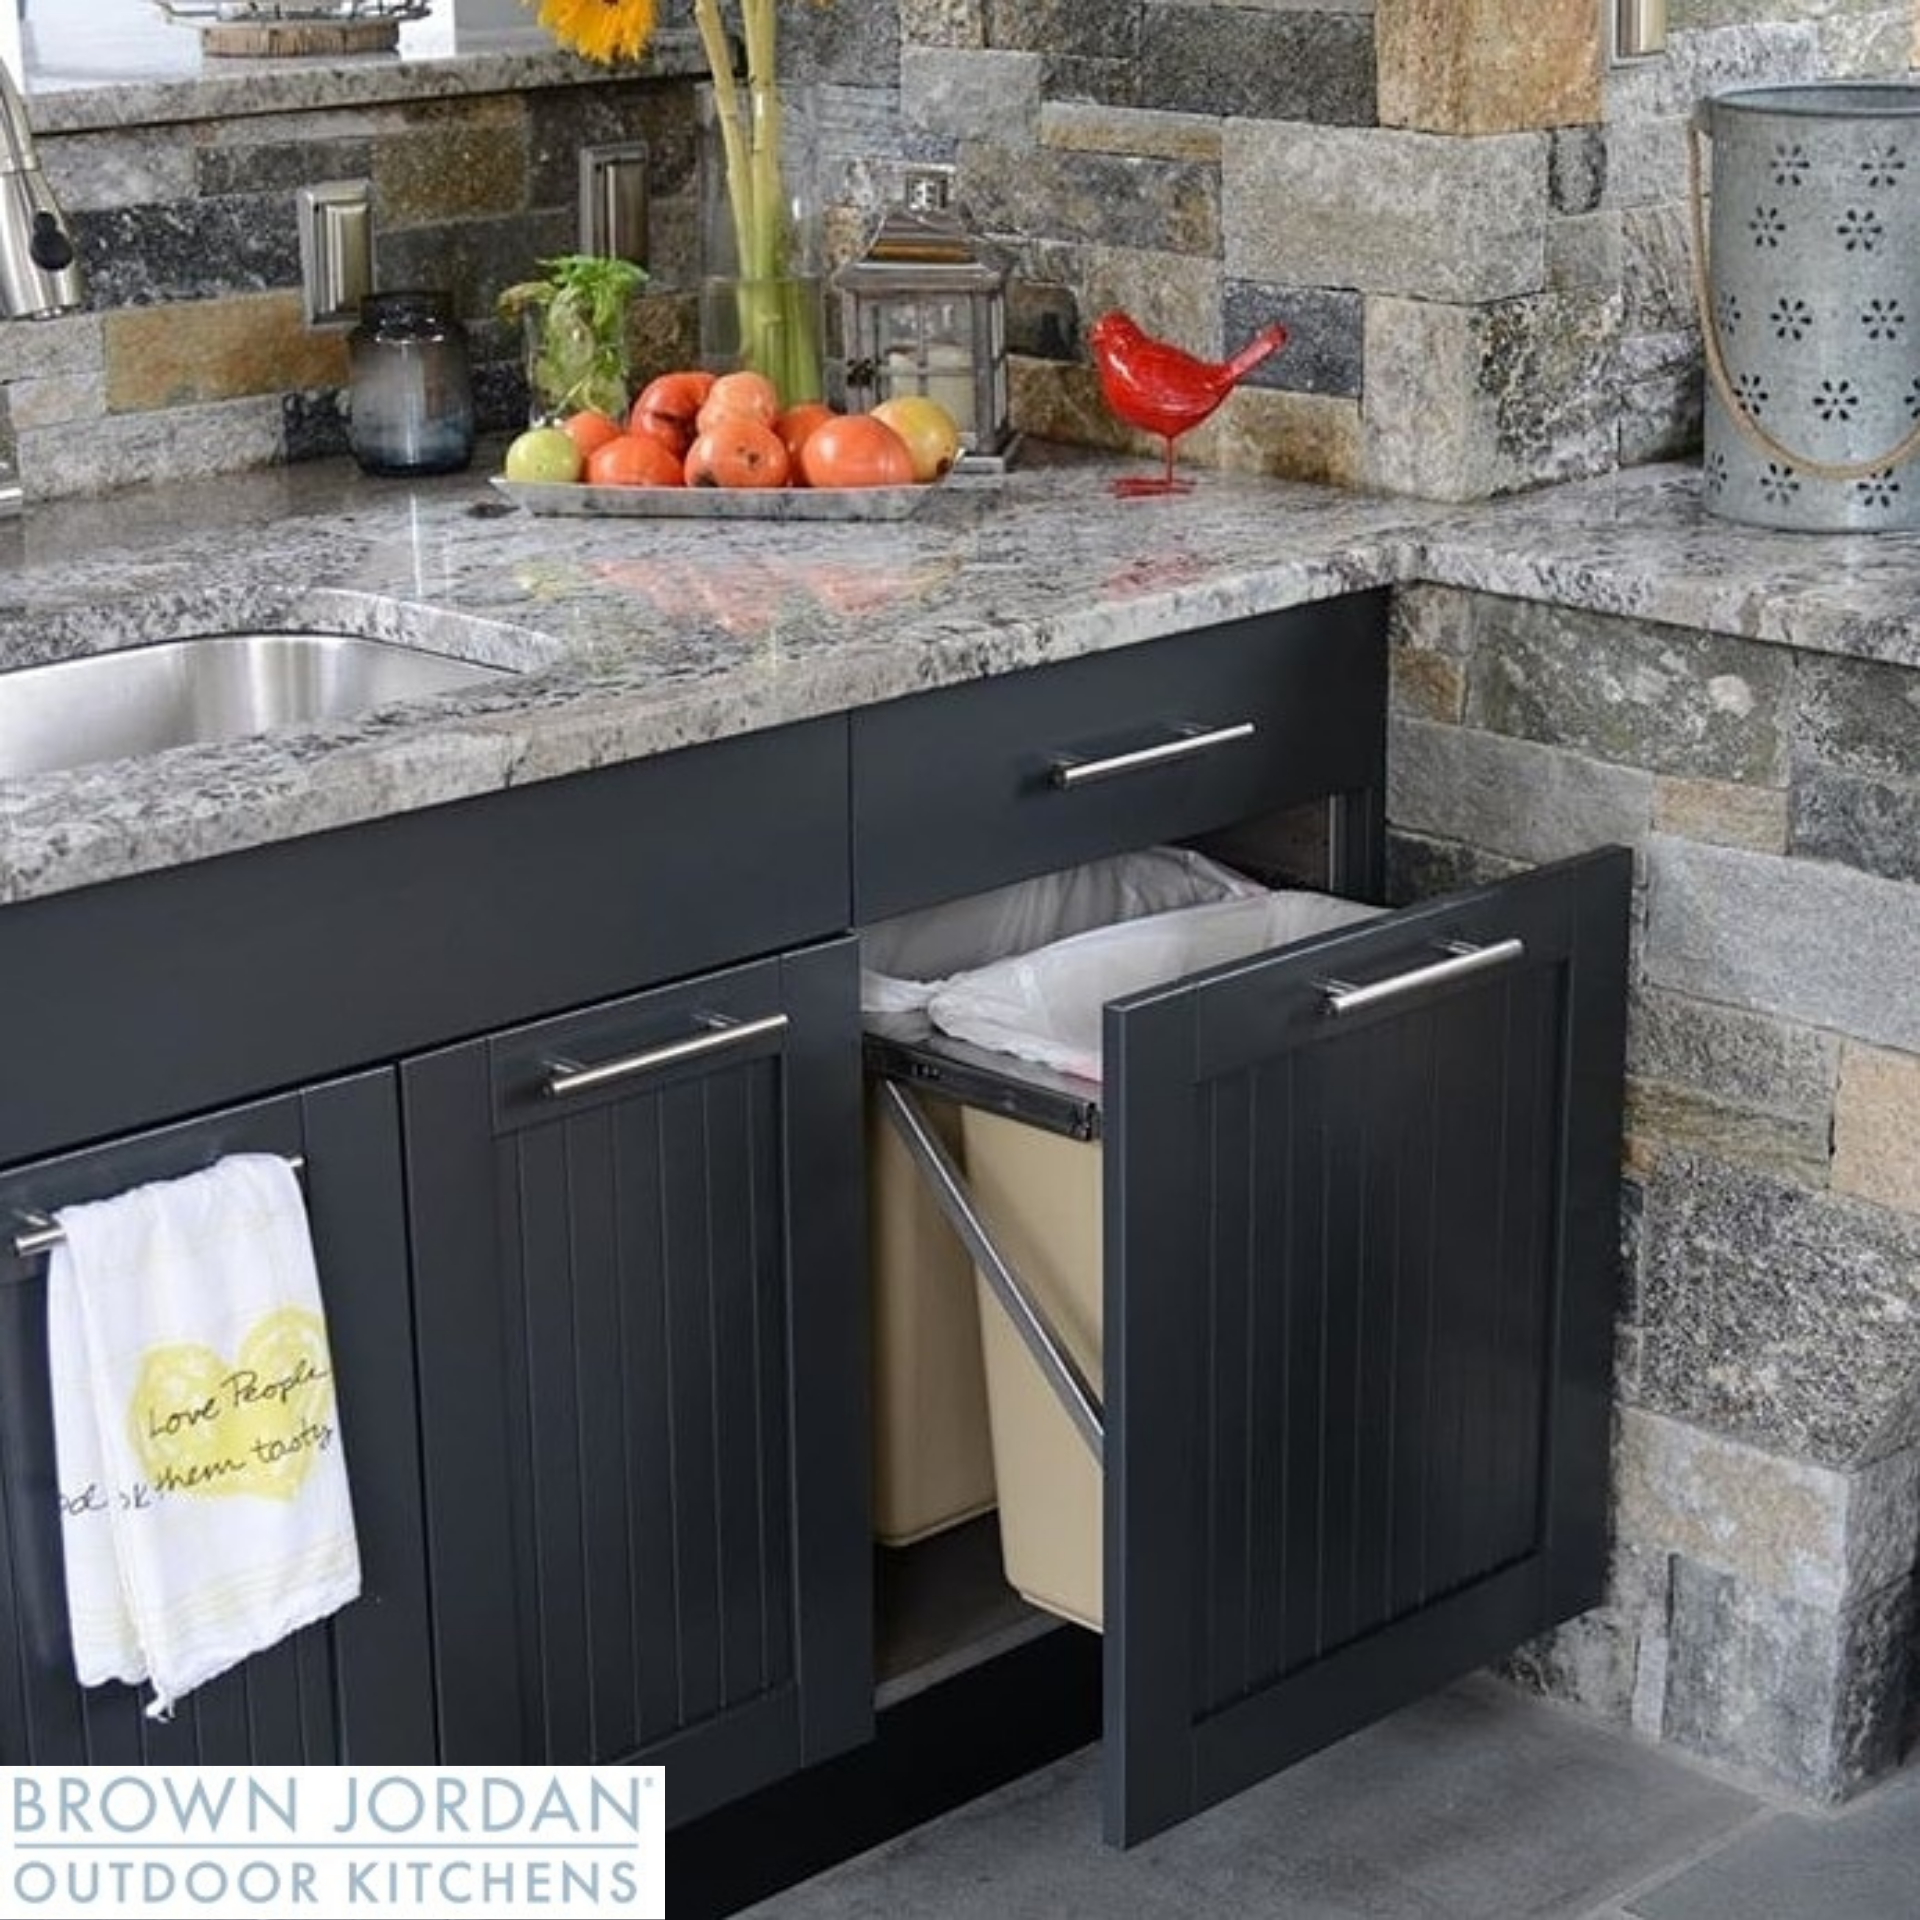 Outdoor Kitchen Stainless Steel 4 Piece Cabinet Set Newage Products Outdoor Kitchen Stainless Steel Cabinets Custom Countertops